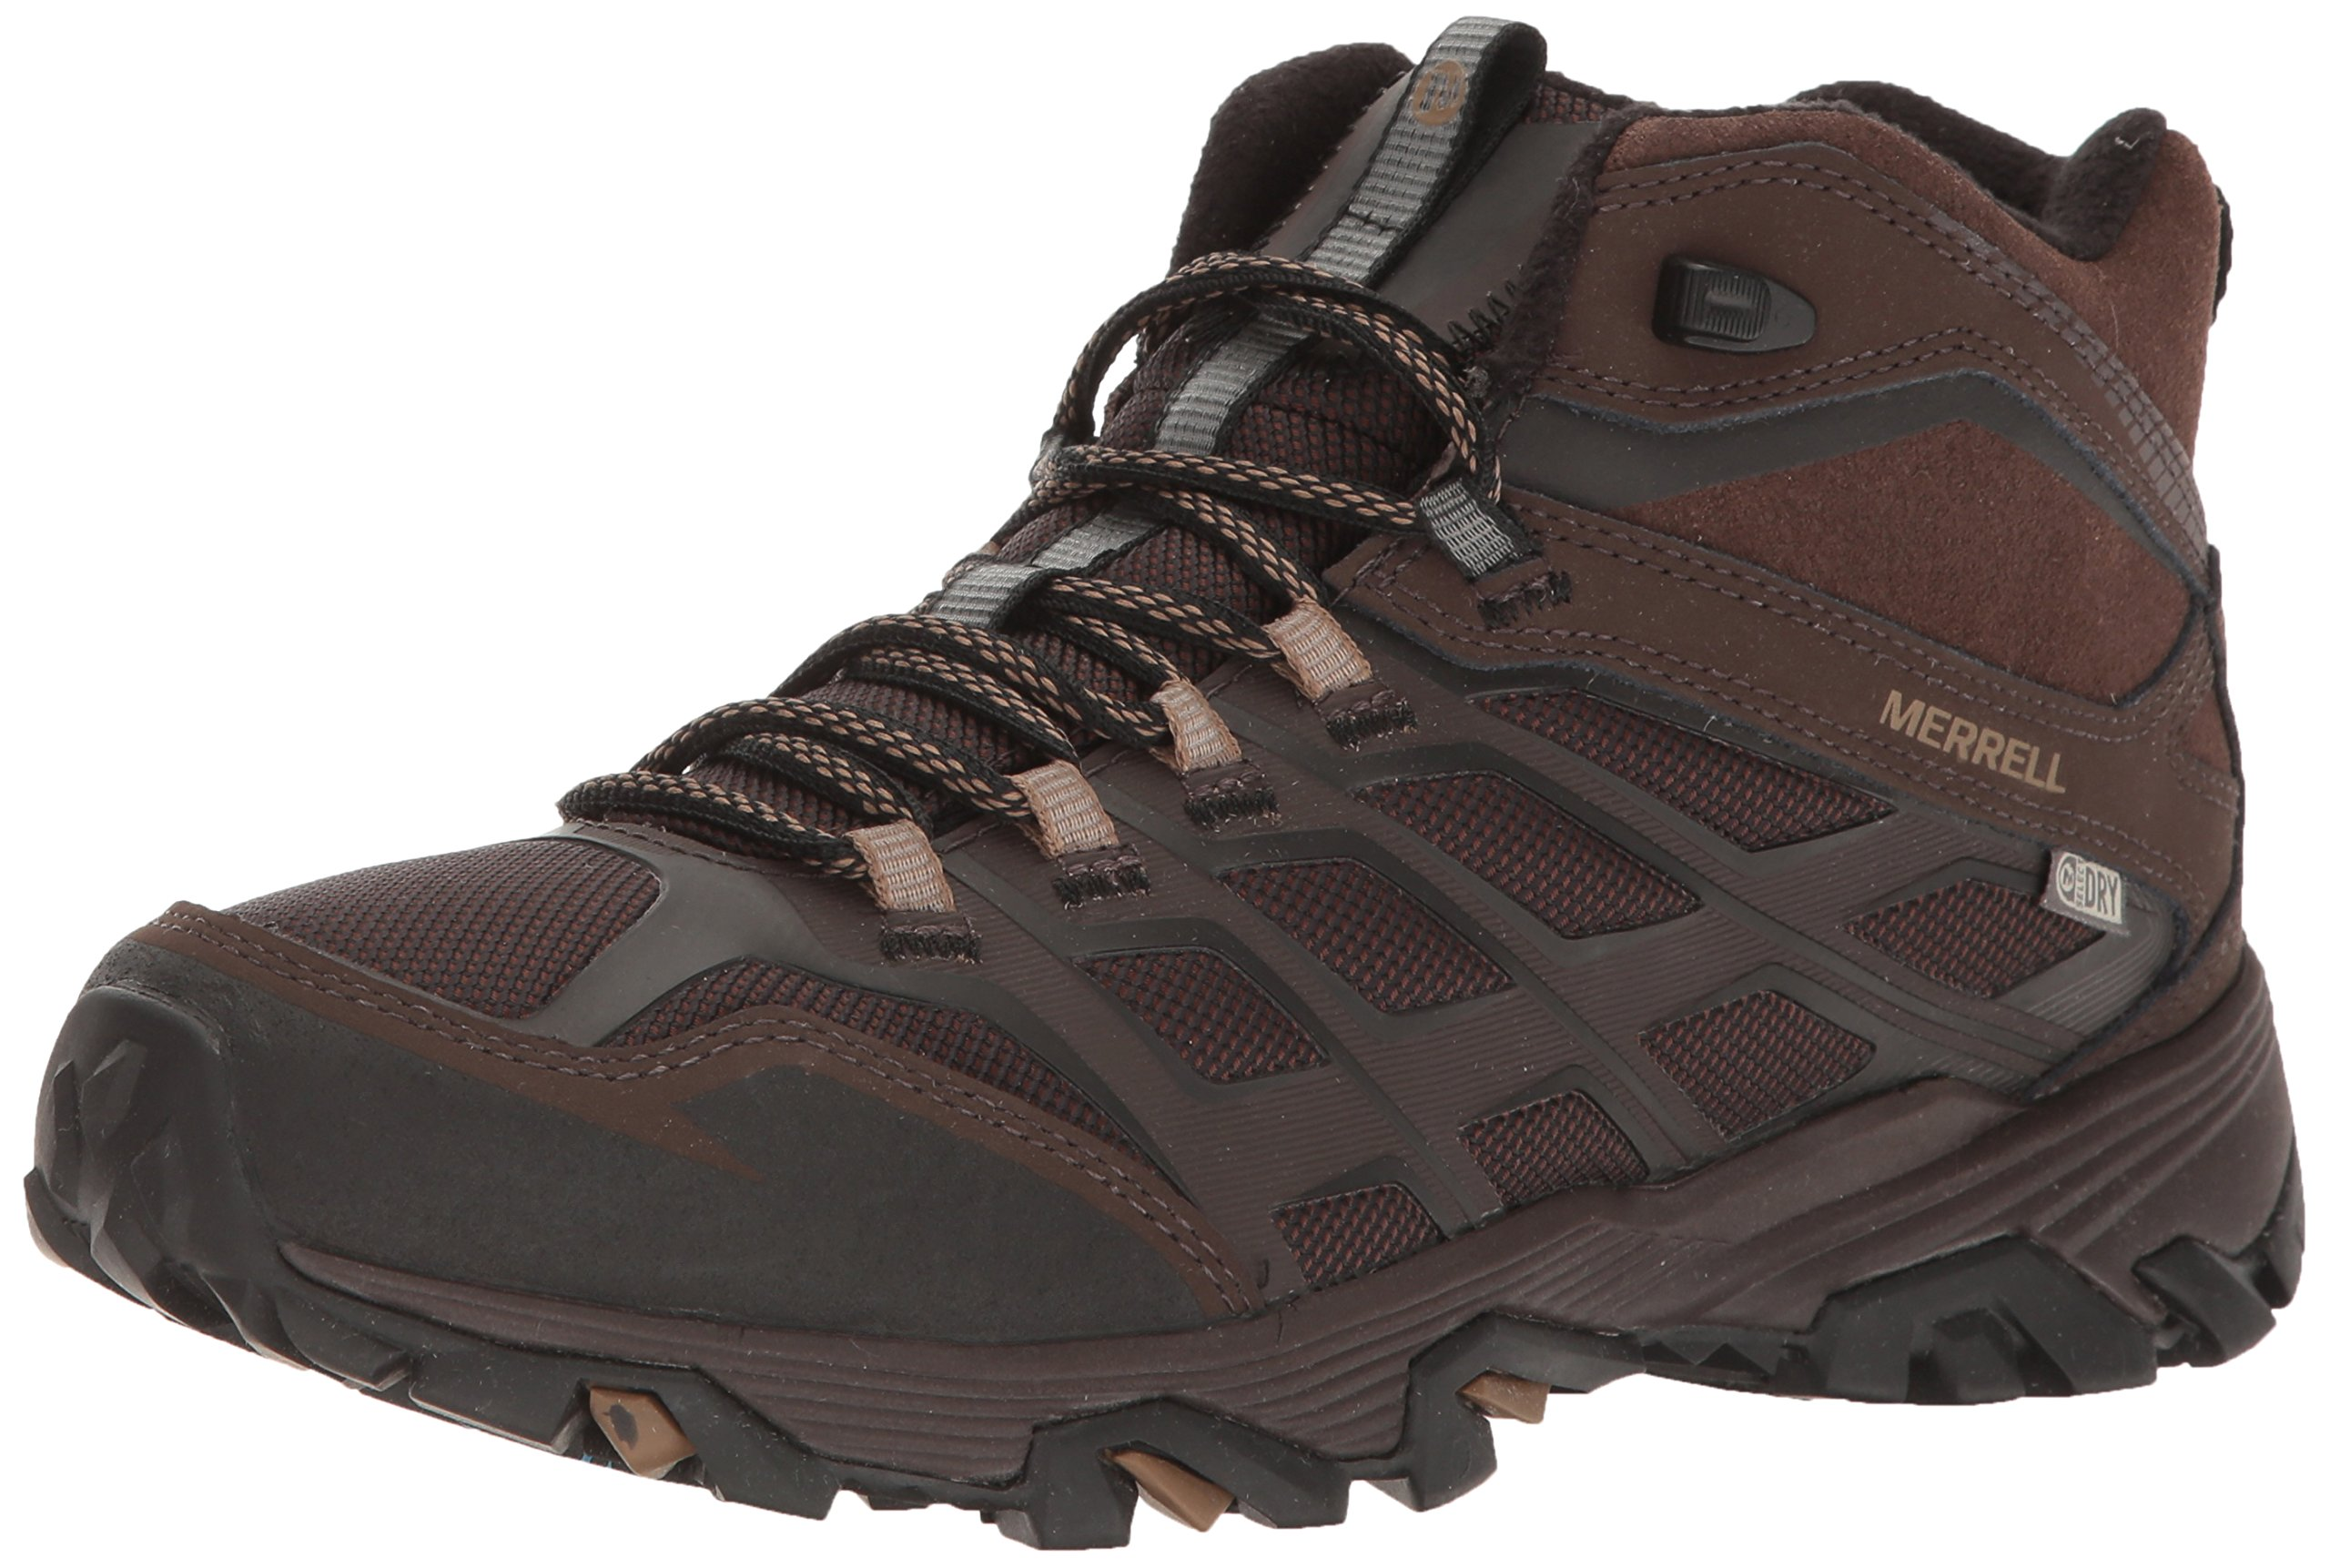 Merrell Men's Moab FST Ice + Thermo Winter Boot, Espresso, 10.5 M US by Merrell